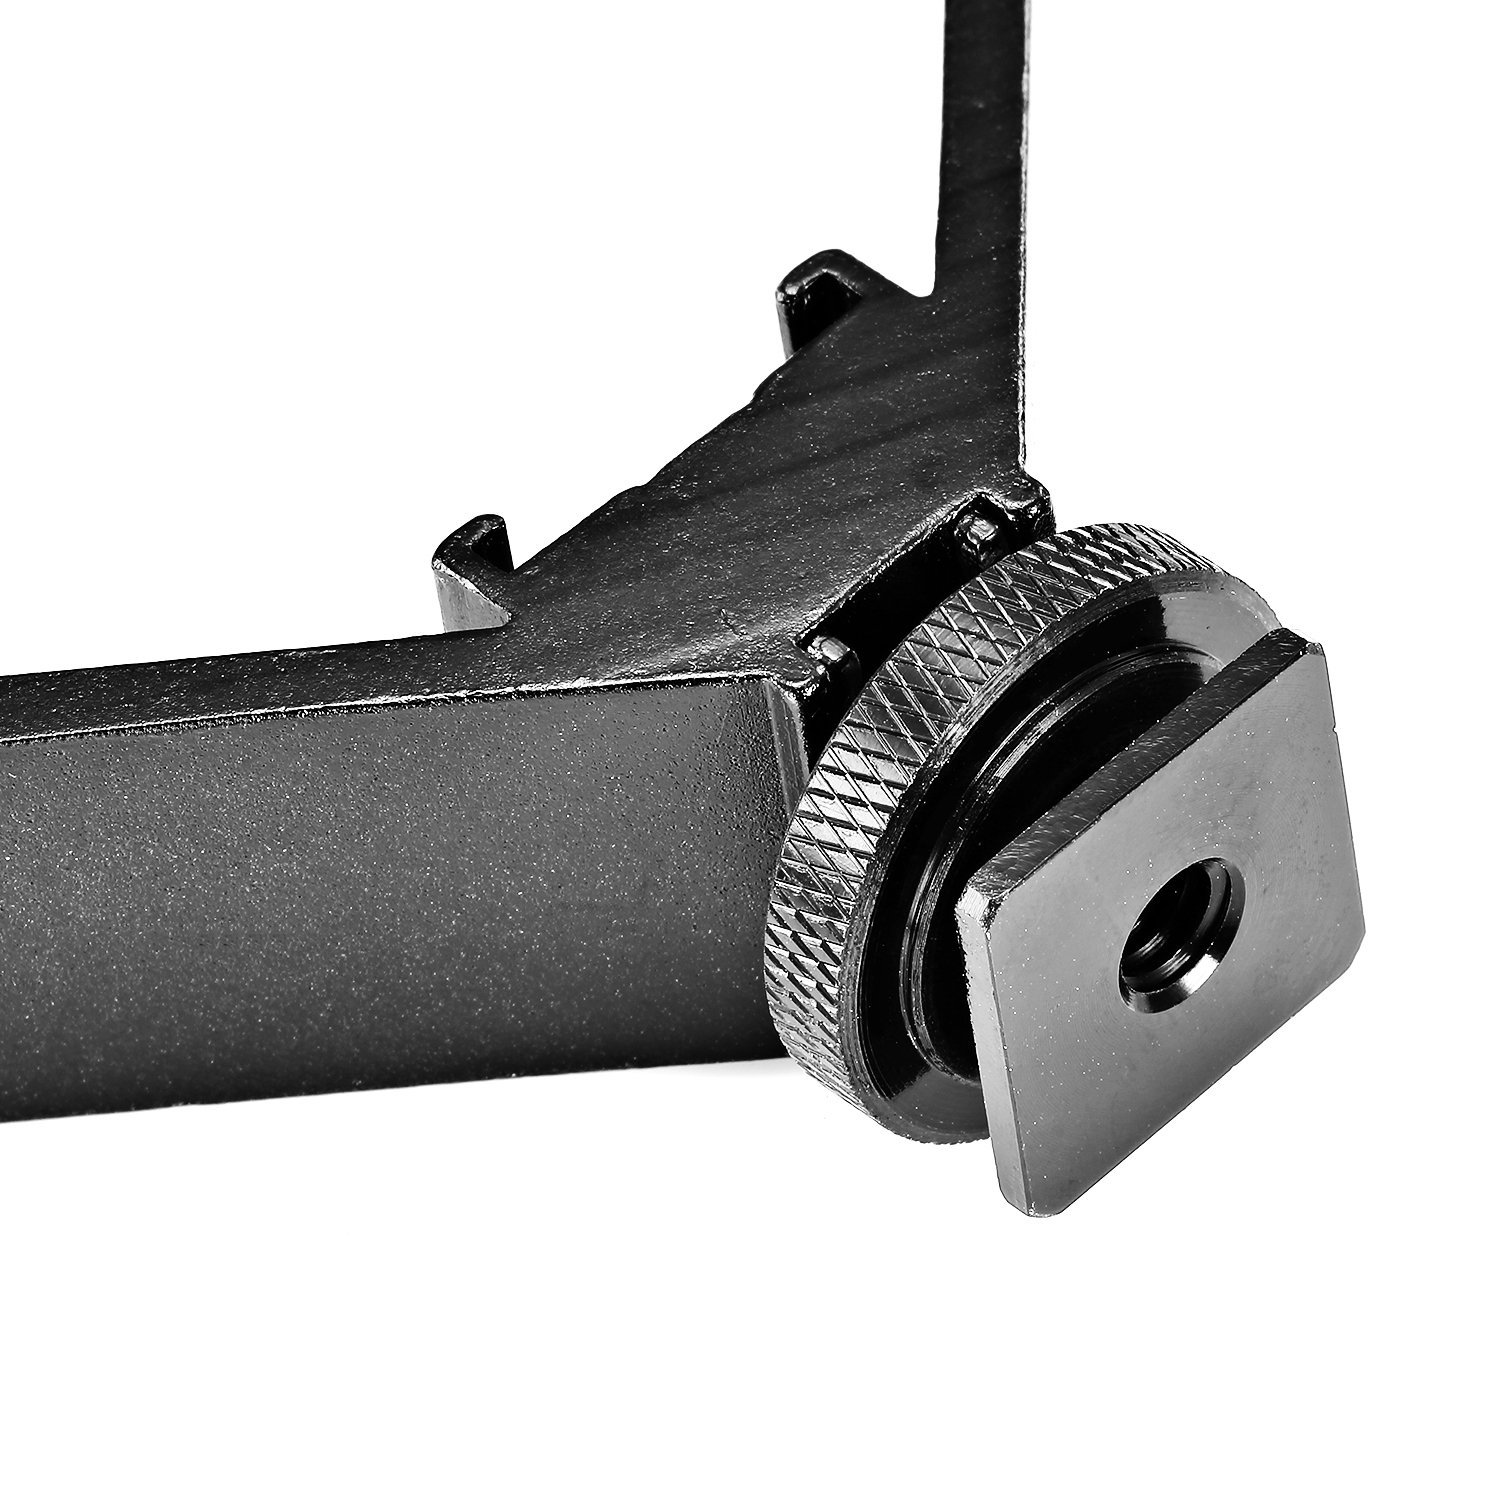 Neewer Aluminium Alloy 5''/12.5cm V-Shape Triple 3 Universal Cold Shoe Mount Bracket for Nikon Canon Sony Pentax DSLR Camera or Camcorder Accessory Such as LED Video Light,Microphone,Monitor,Flash by Neewer